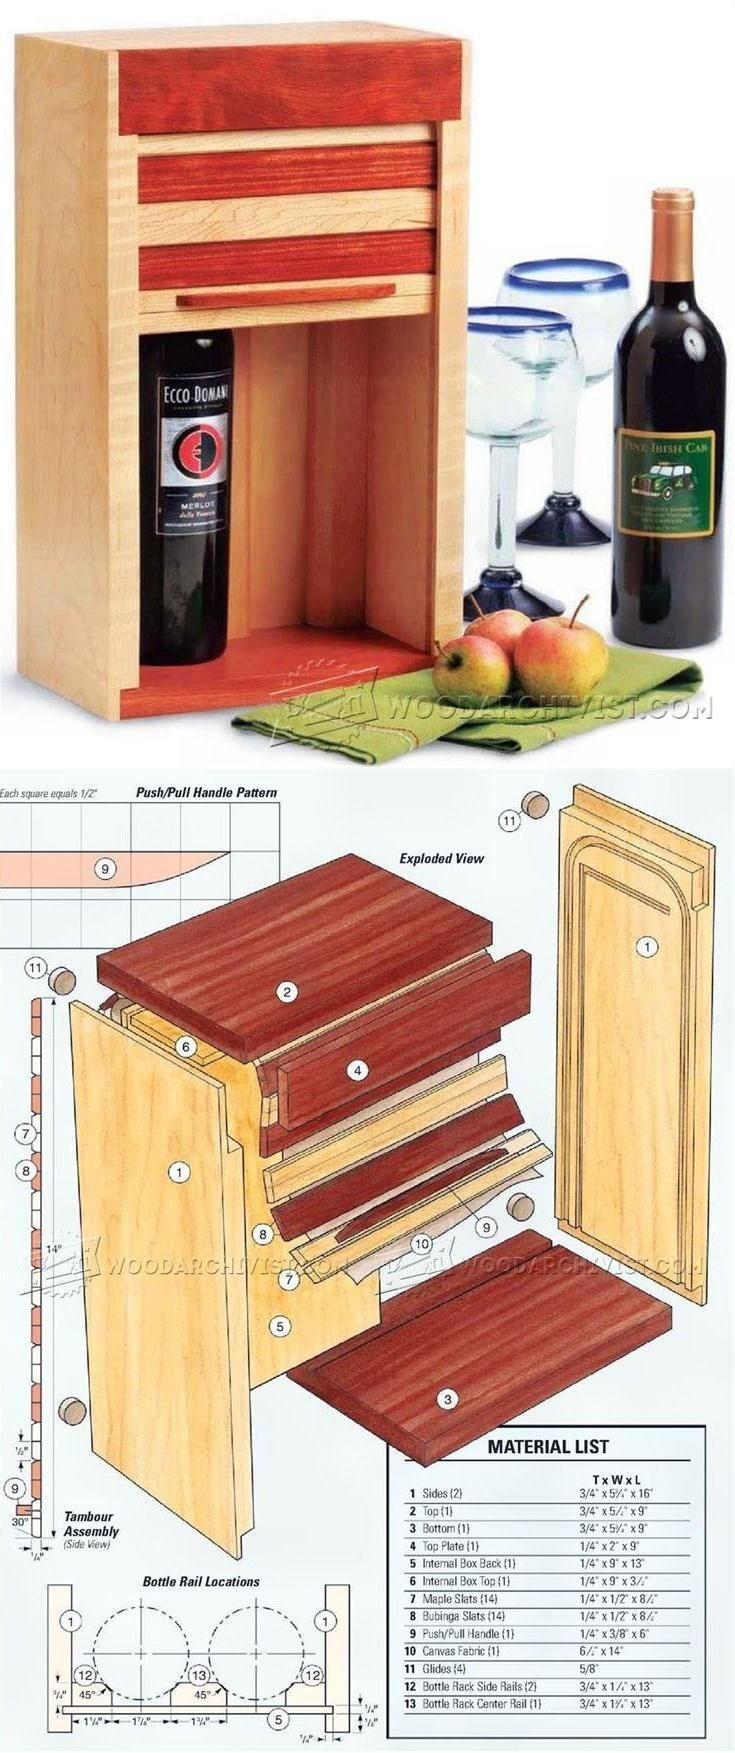 Wine Gift Box Plans Woodworking Plans And Projects Woodarchivist Com Woodworking Plans Woodworking Projects Diy Woodworking Projects Plans